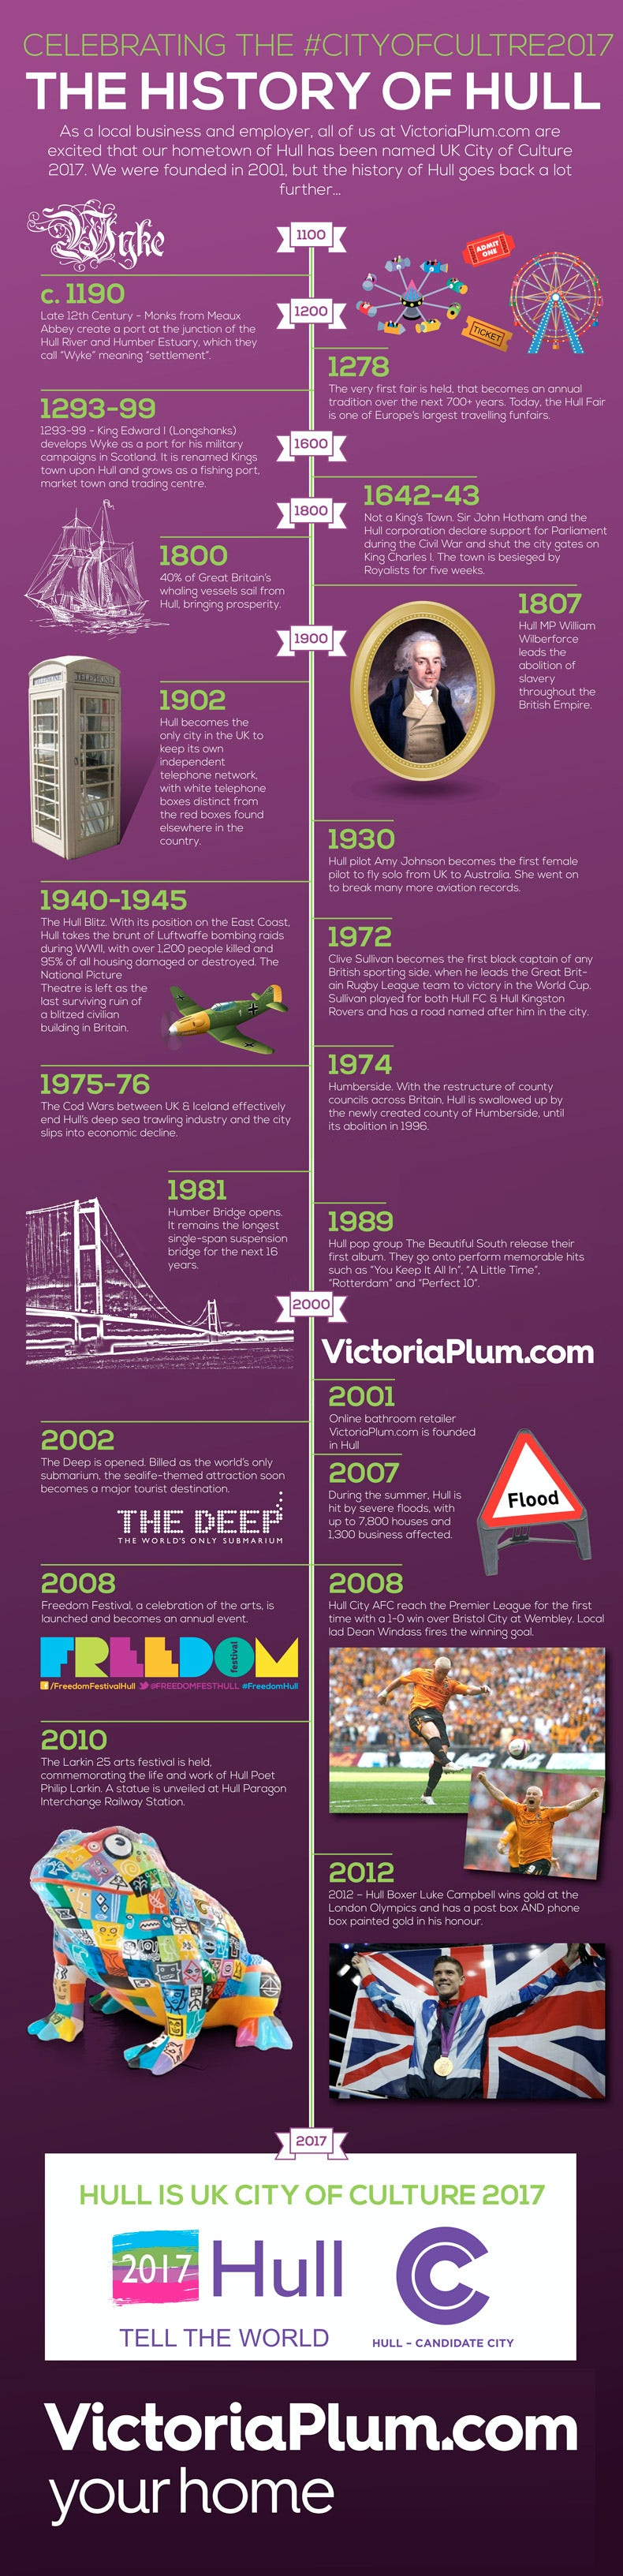 History of Hull Infographic